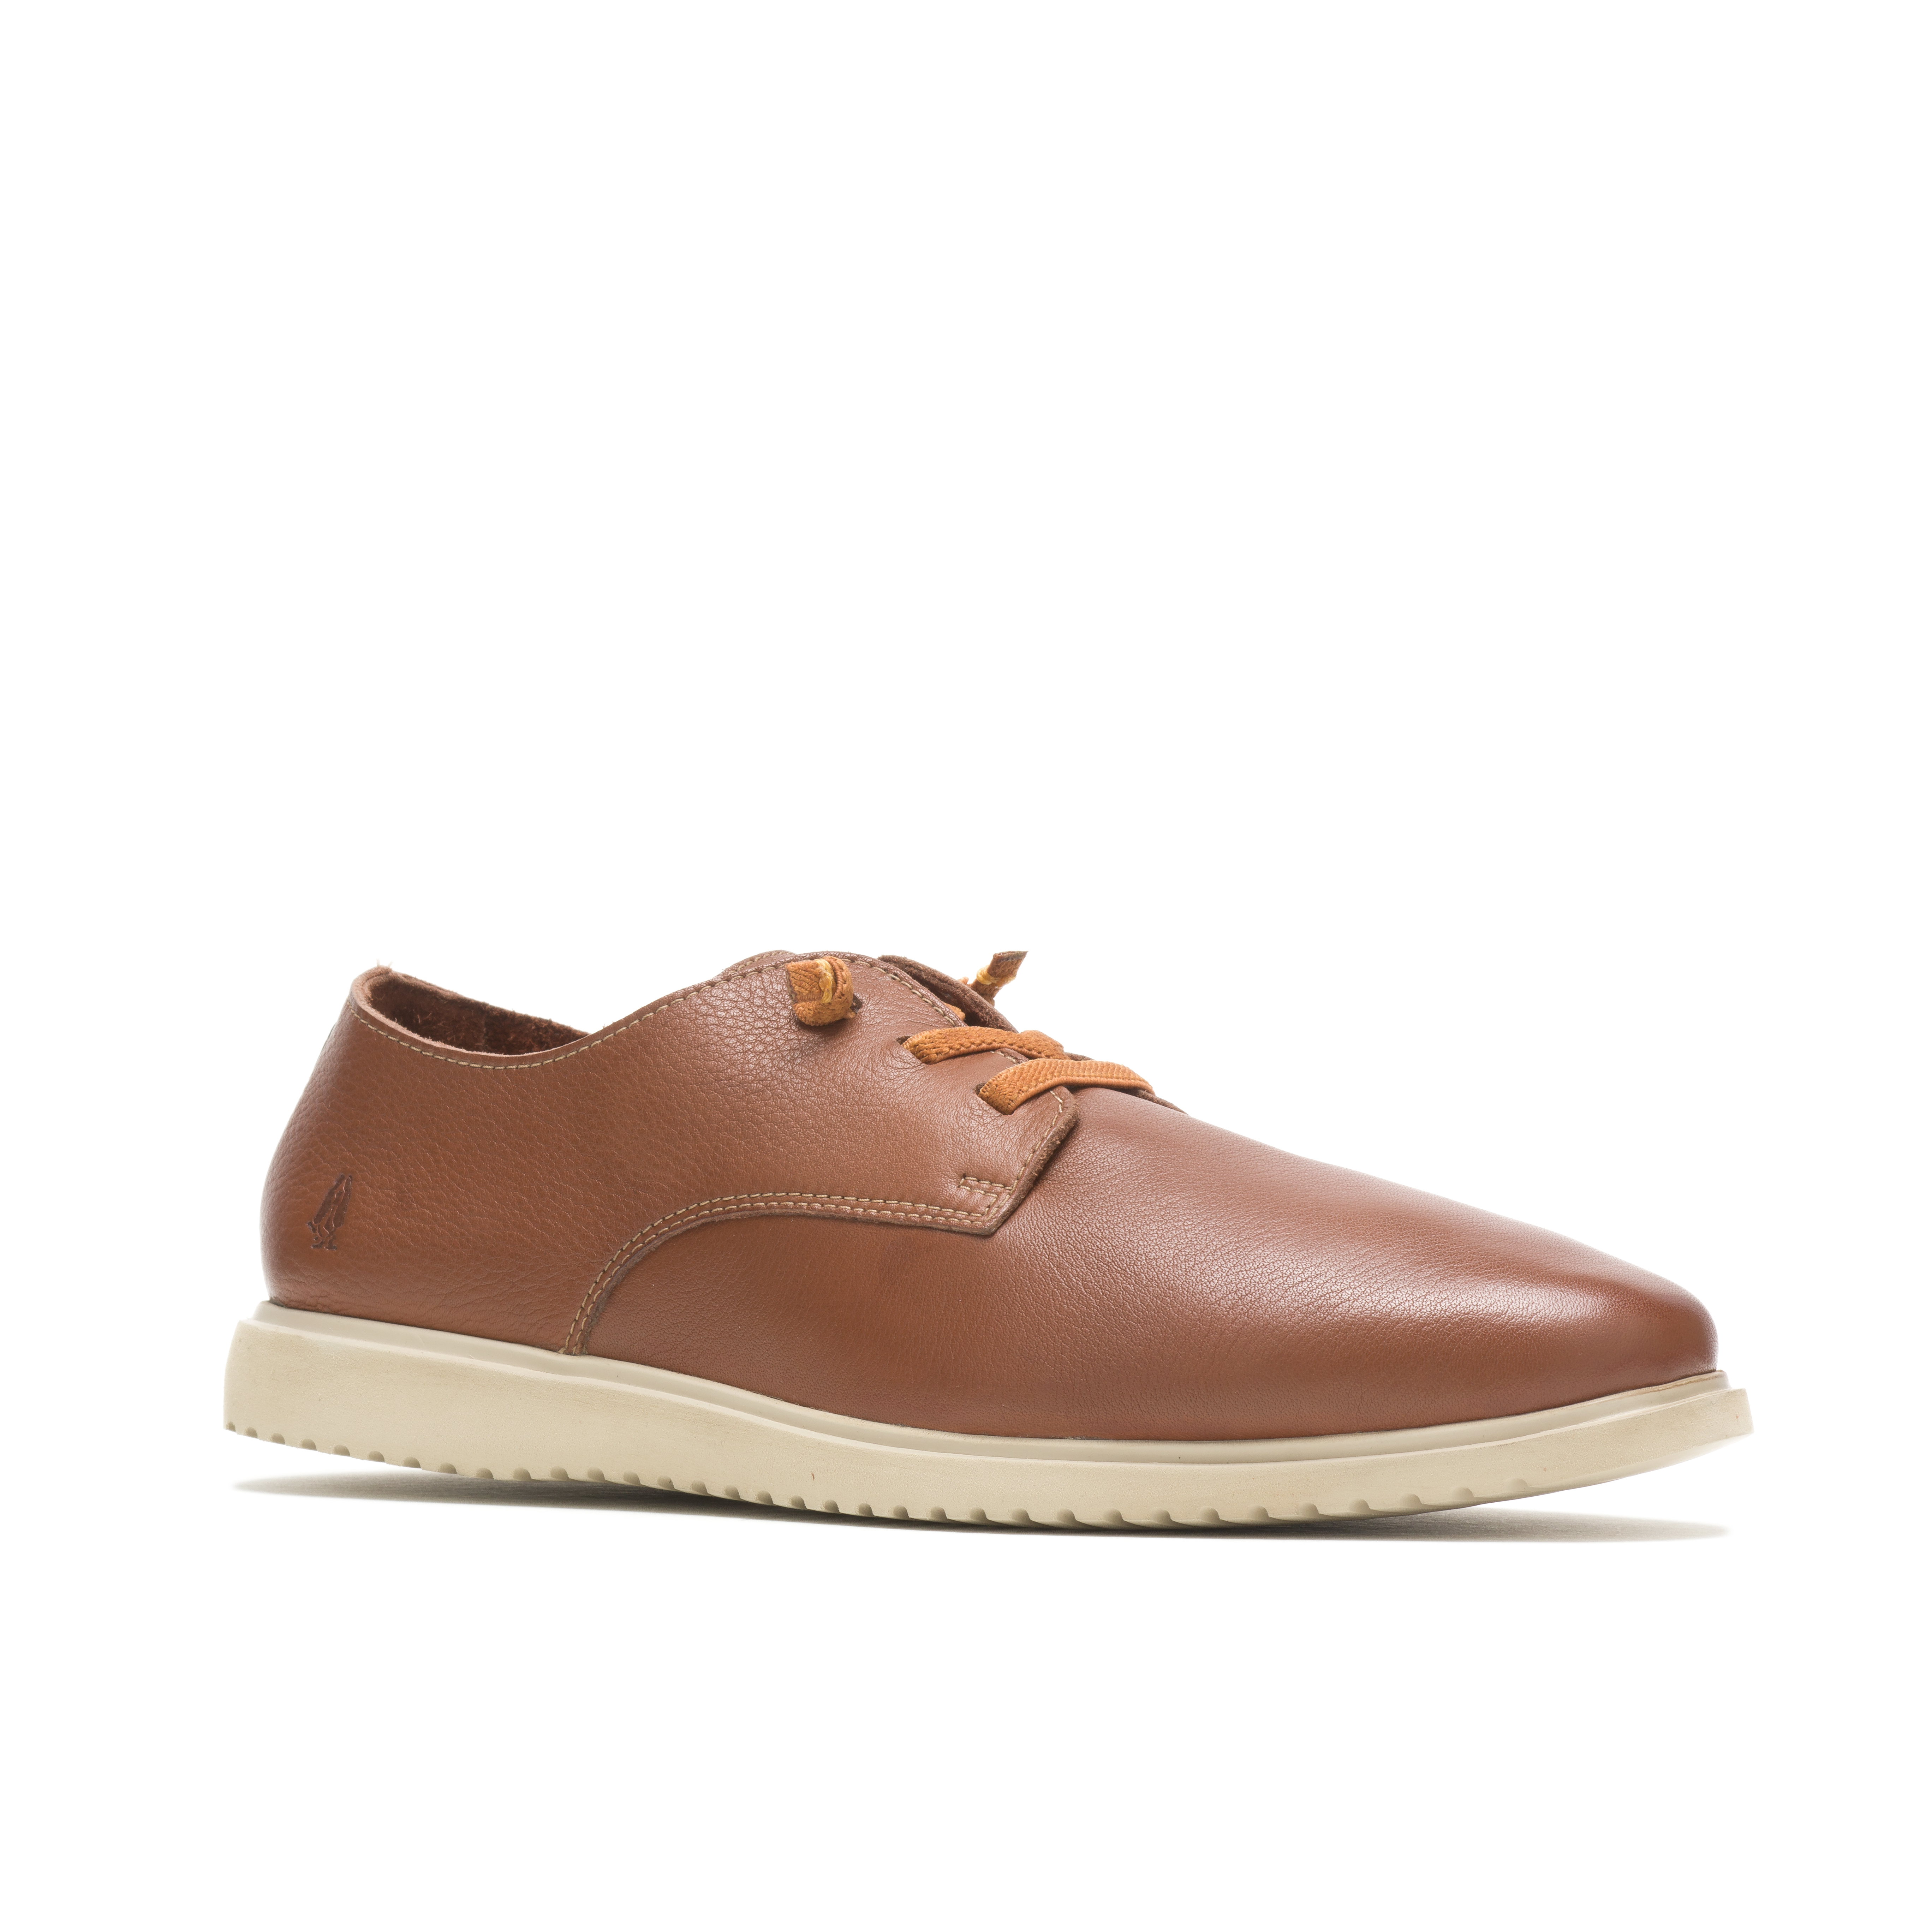 Hush everyday lace up sko, cognac leather, 43